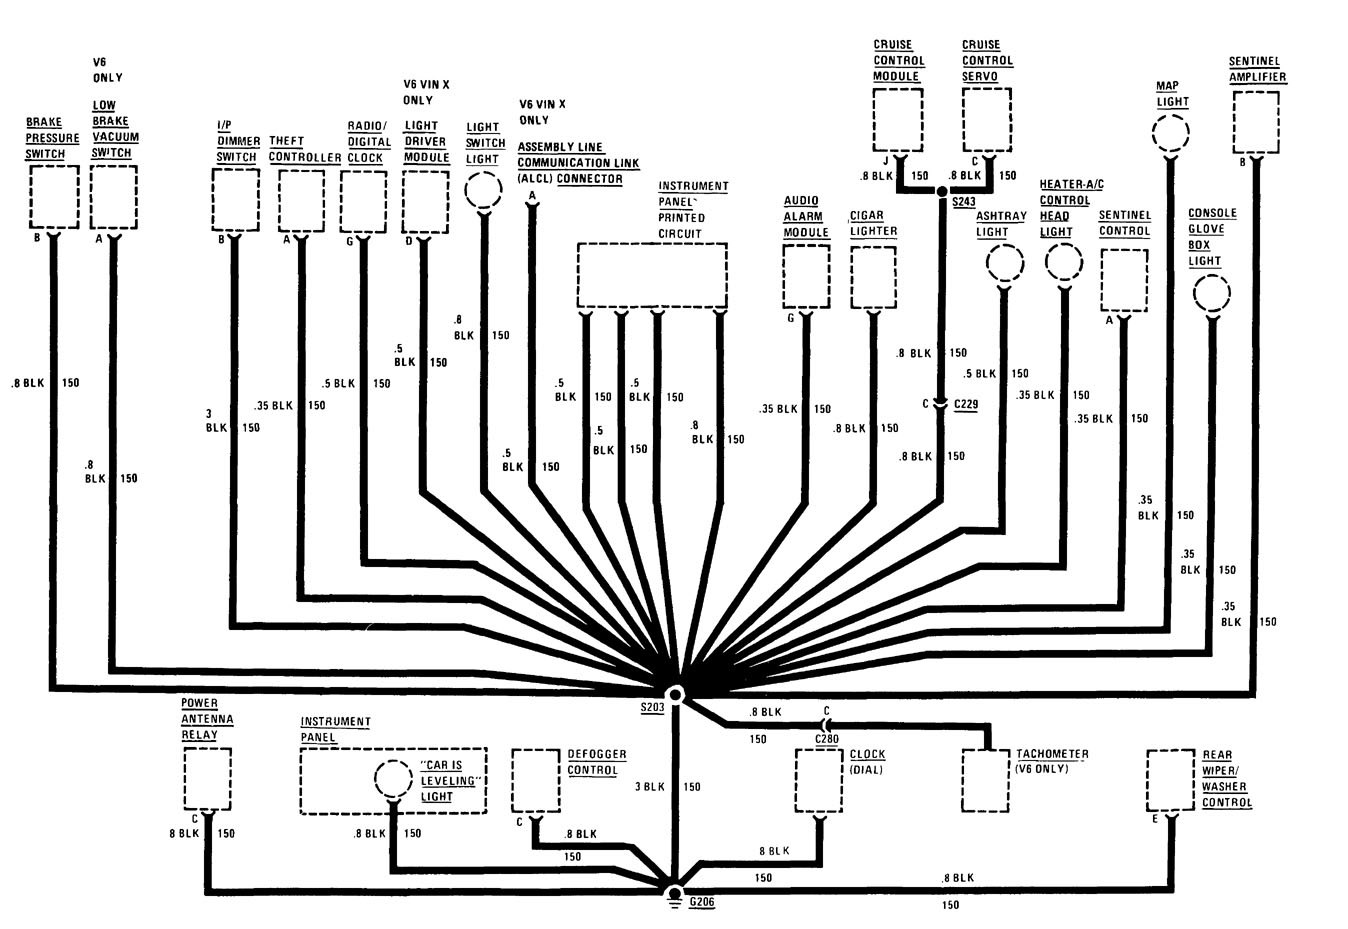 2003 buick century wiring diagram palisade cell plant 2000 regal wiper imageresizertool com